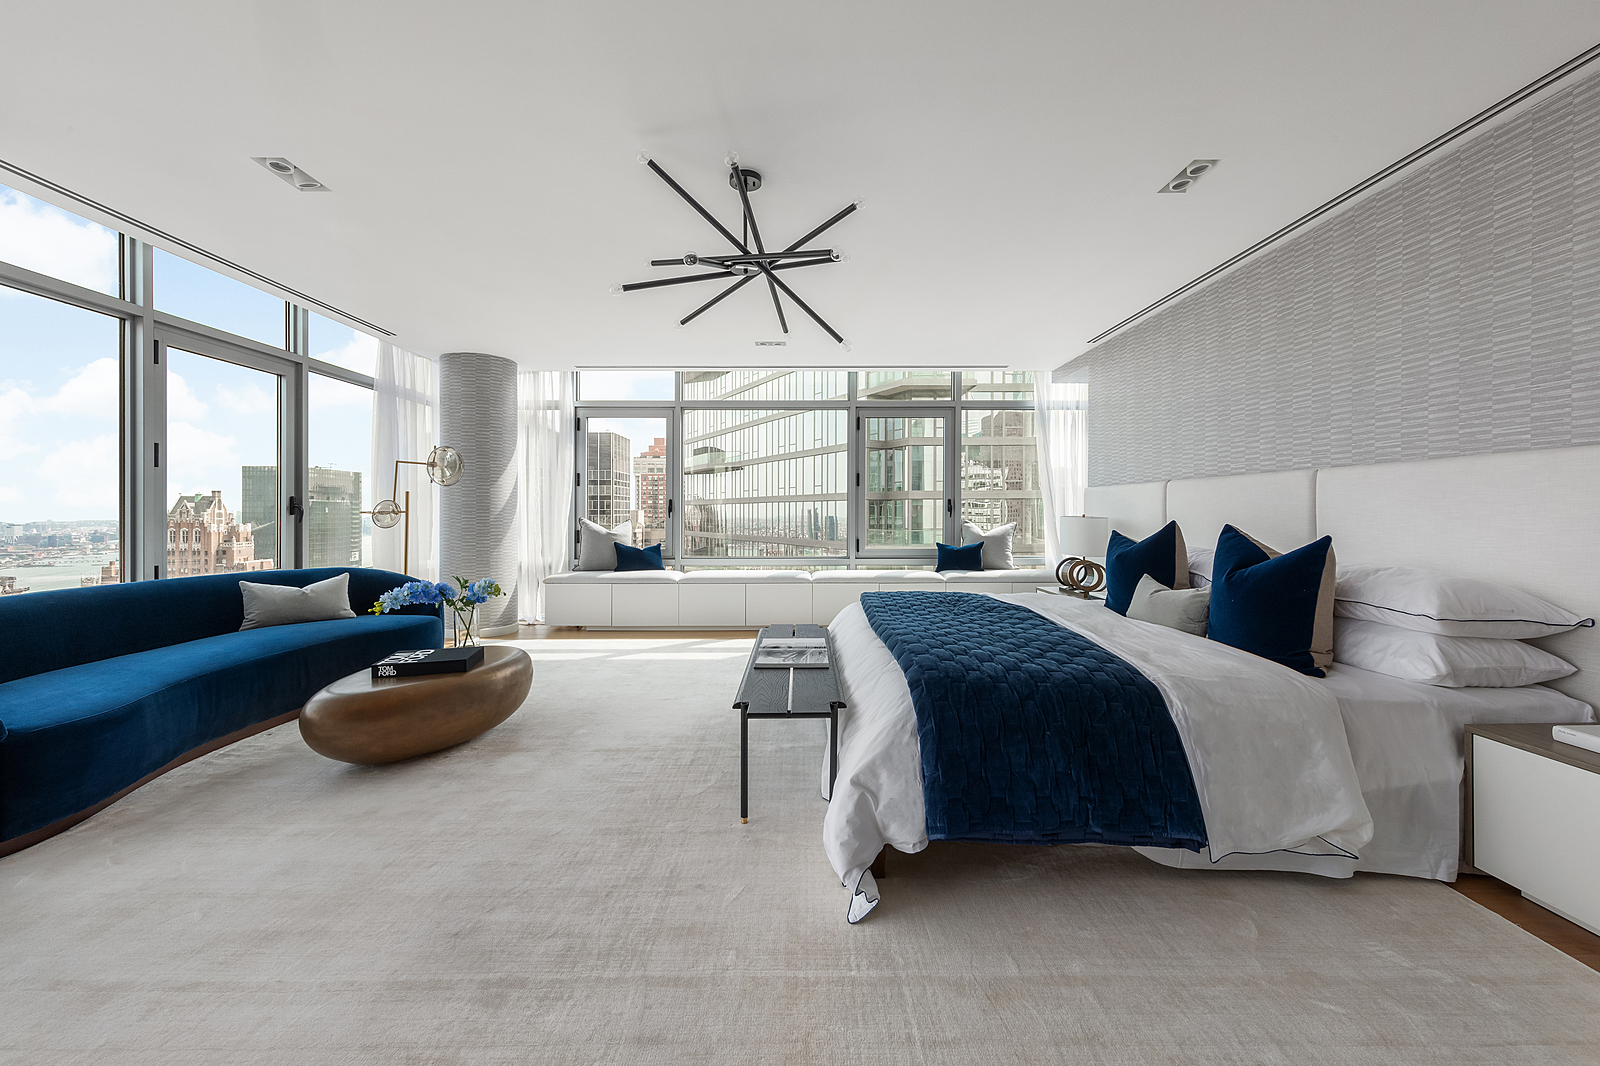 219East44thStreetPH-MidtownNewYork_Aaron_Ross_DouglasElliman_Photography_83045150_high_res